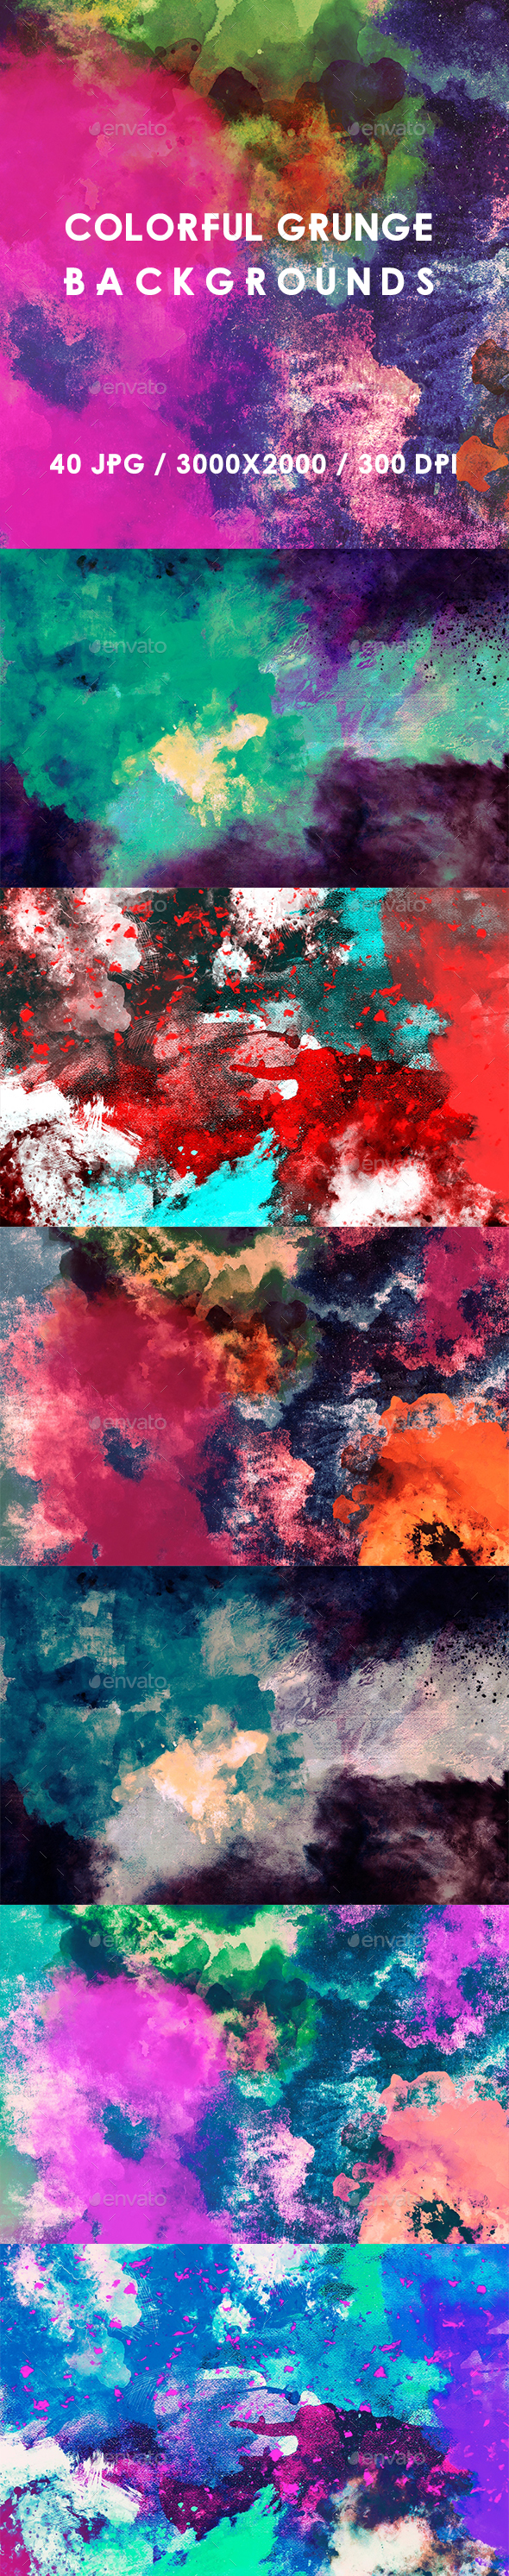 40 Colorful Grunge Backgrounds - Abstract Backgrounds